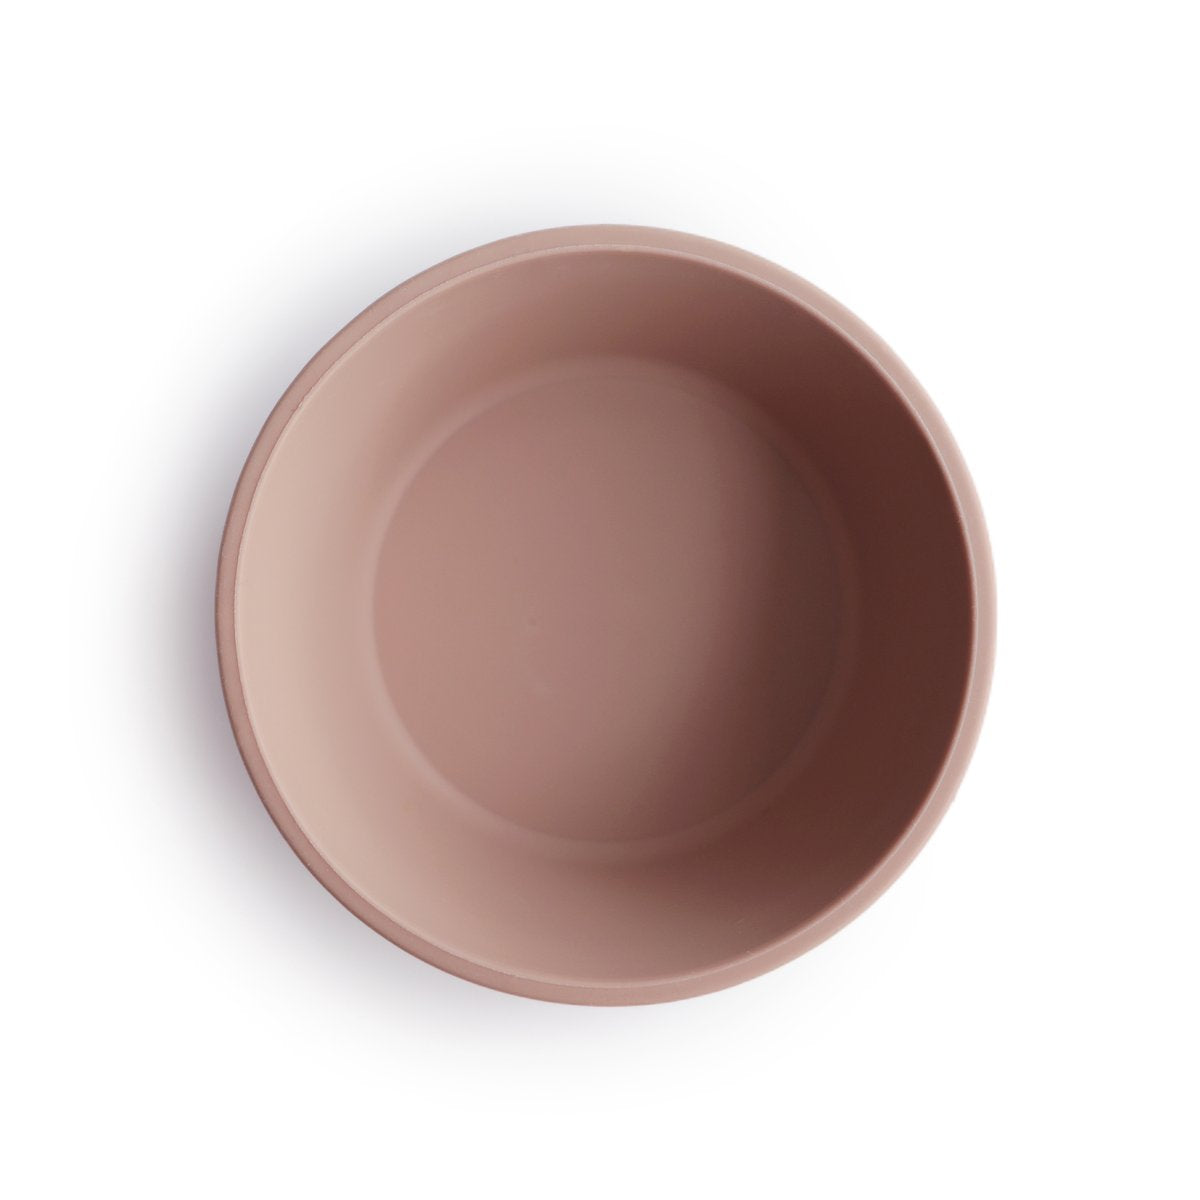 Silicone Suction Bowl (Blush)